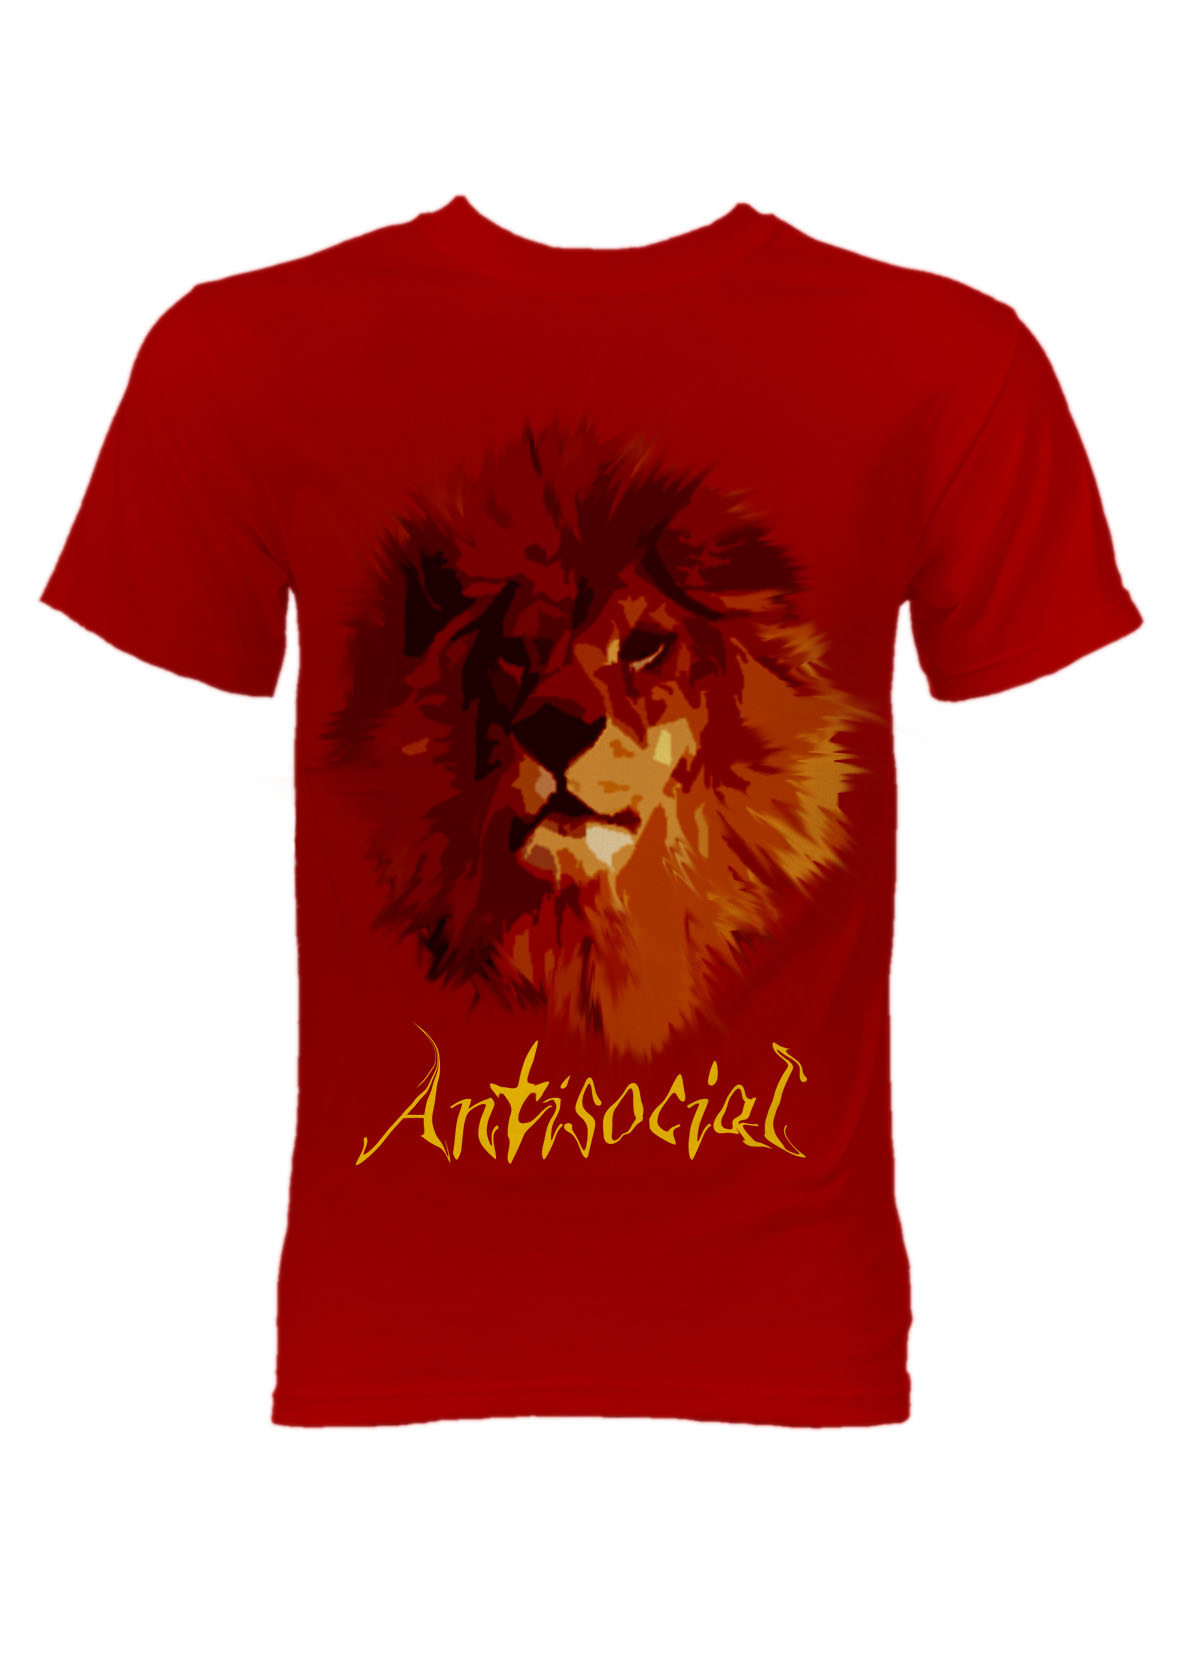 Lion_20shirt_20copy_original